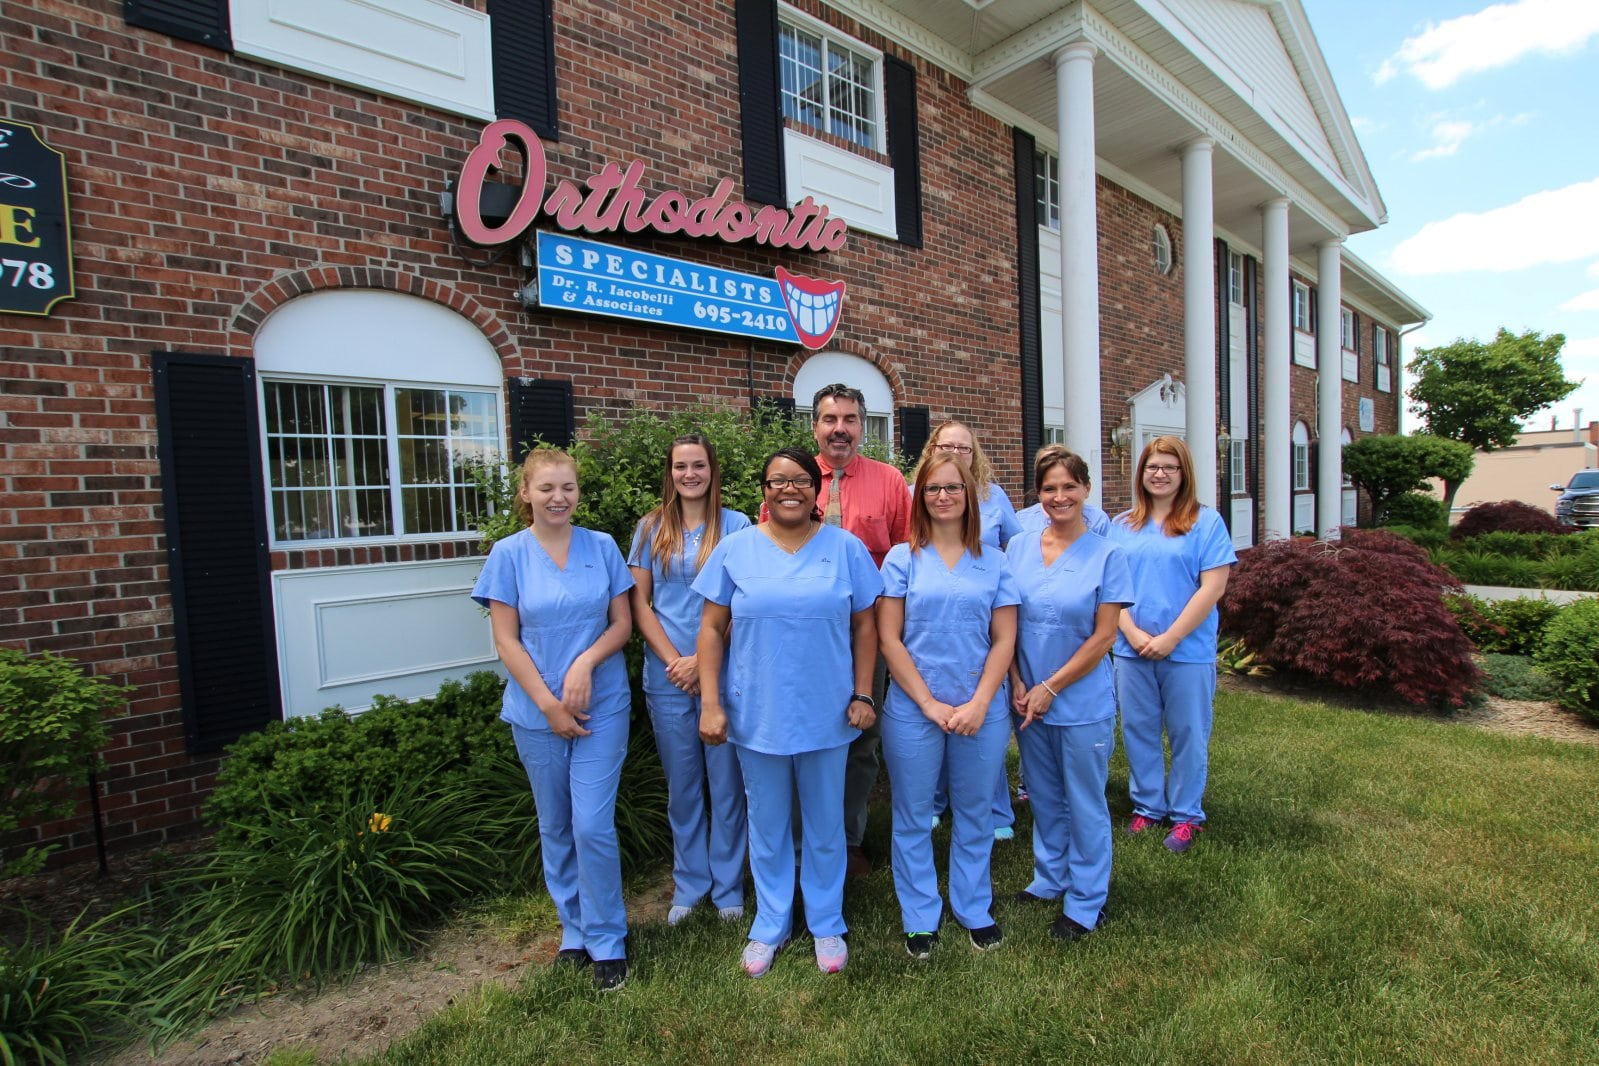 affordable orthodontist